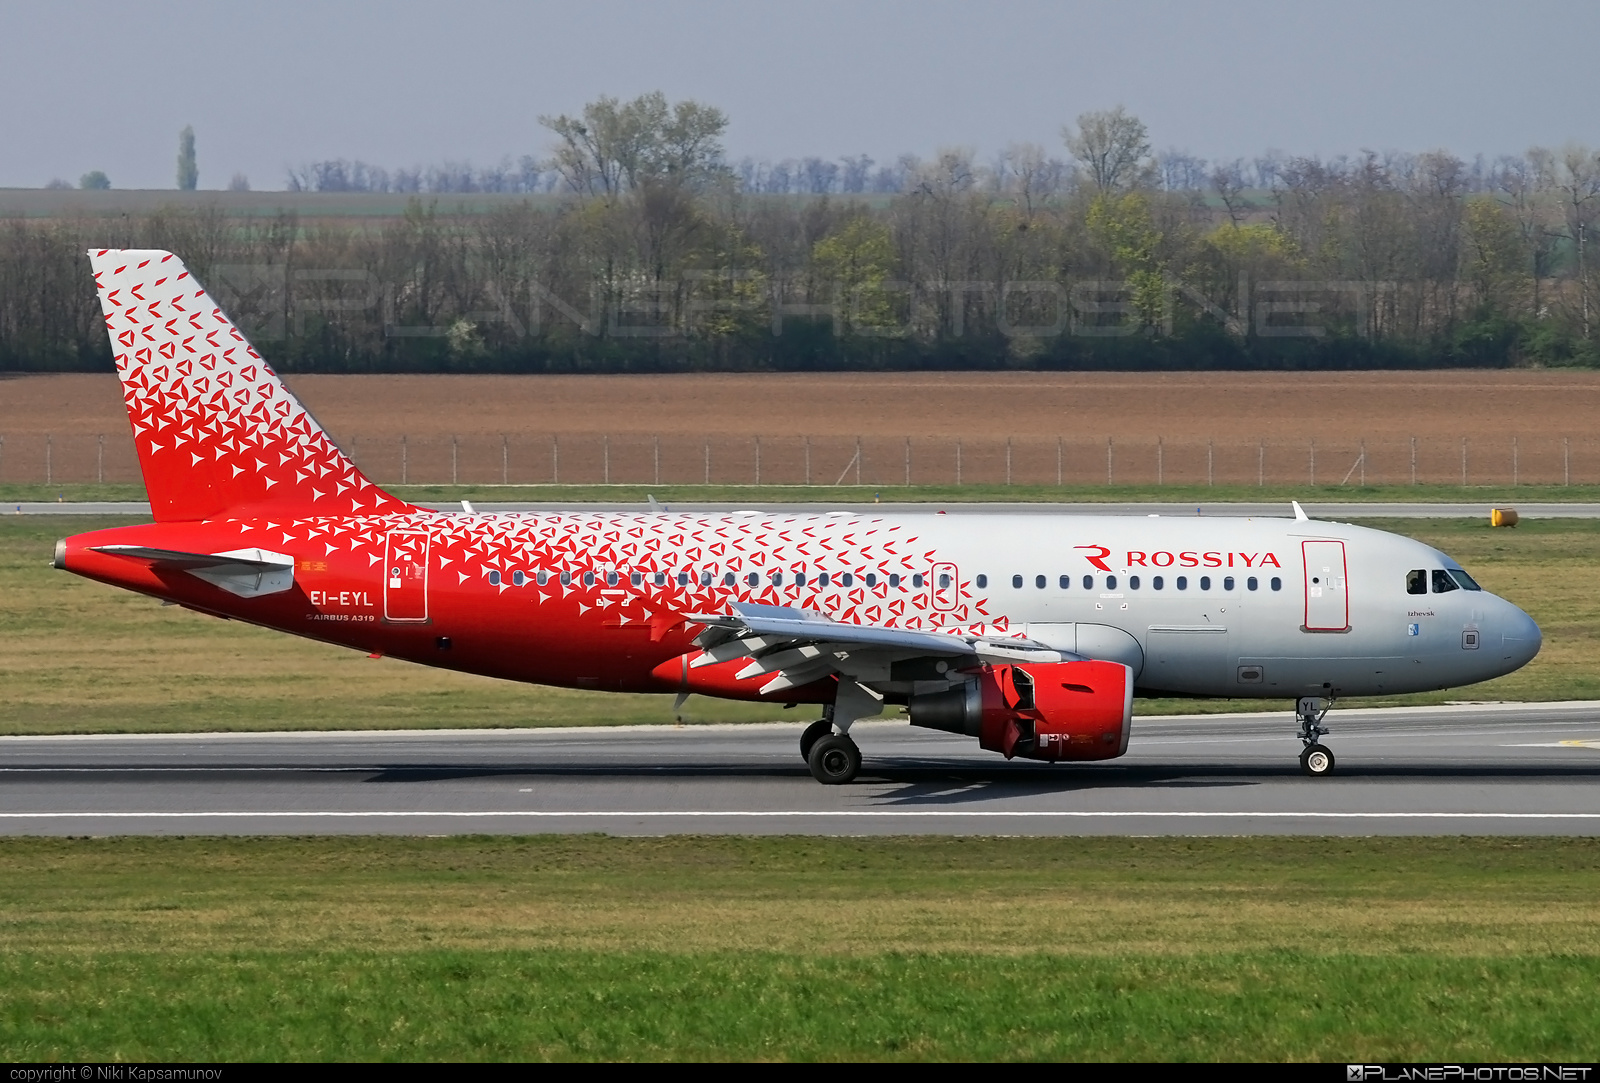 Airbus A319-111 - EI-EYL operated by Rossiya Airlines #a319 #a320family #airbus #airbus319